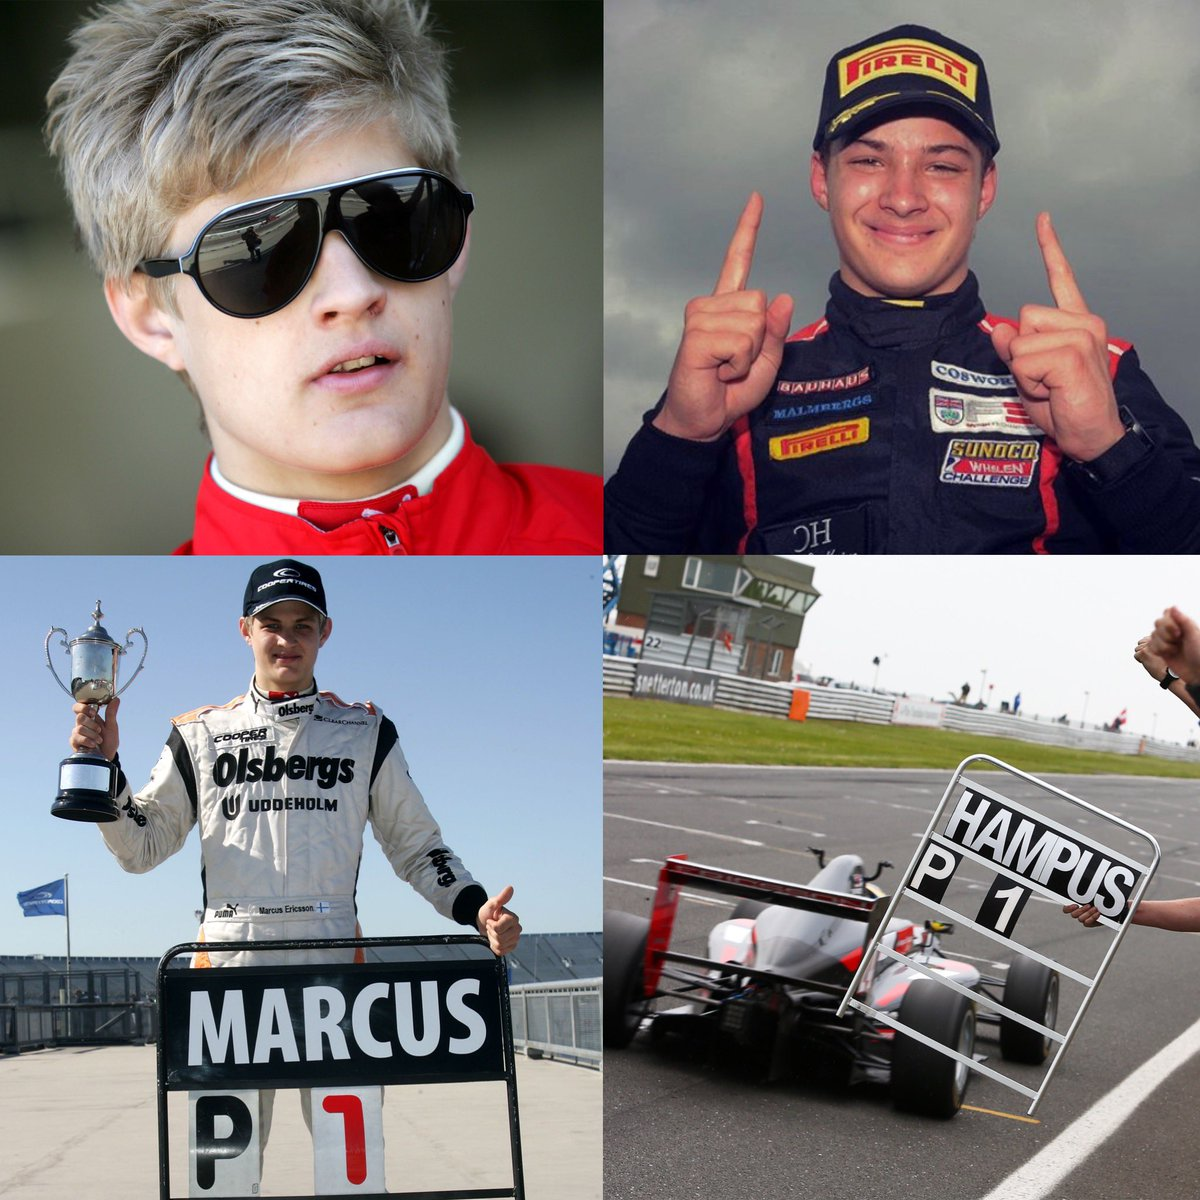 Haha awesome! Crazy to think it's 10 years ago 😅🙈. My first British F3 race win at Rockingham! Biggest question here is how do I get hold of them sunglasses again 😂😂